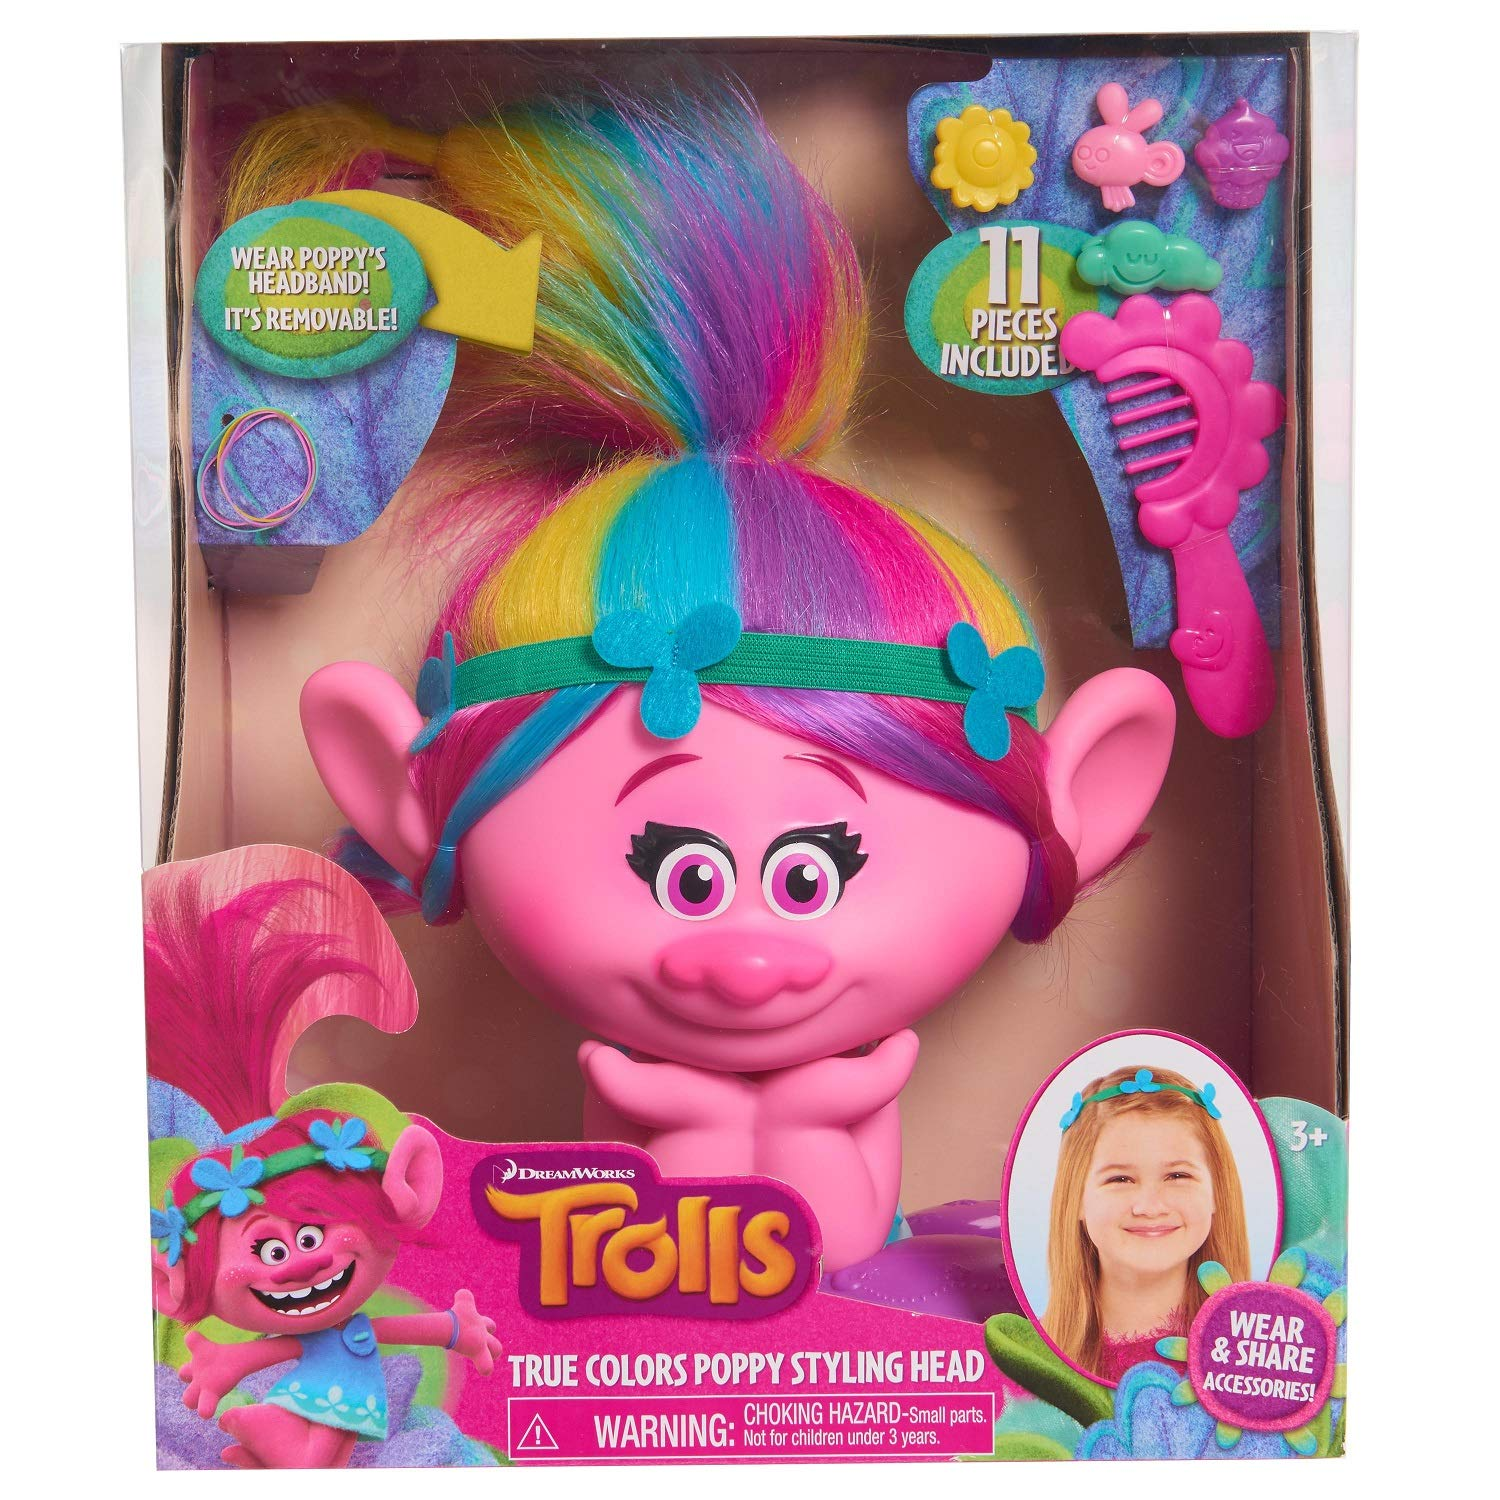 Trolls Just Play Poppy True Colors Styling Head